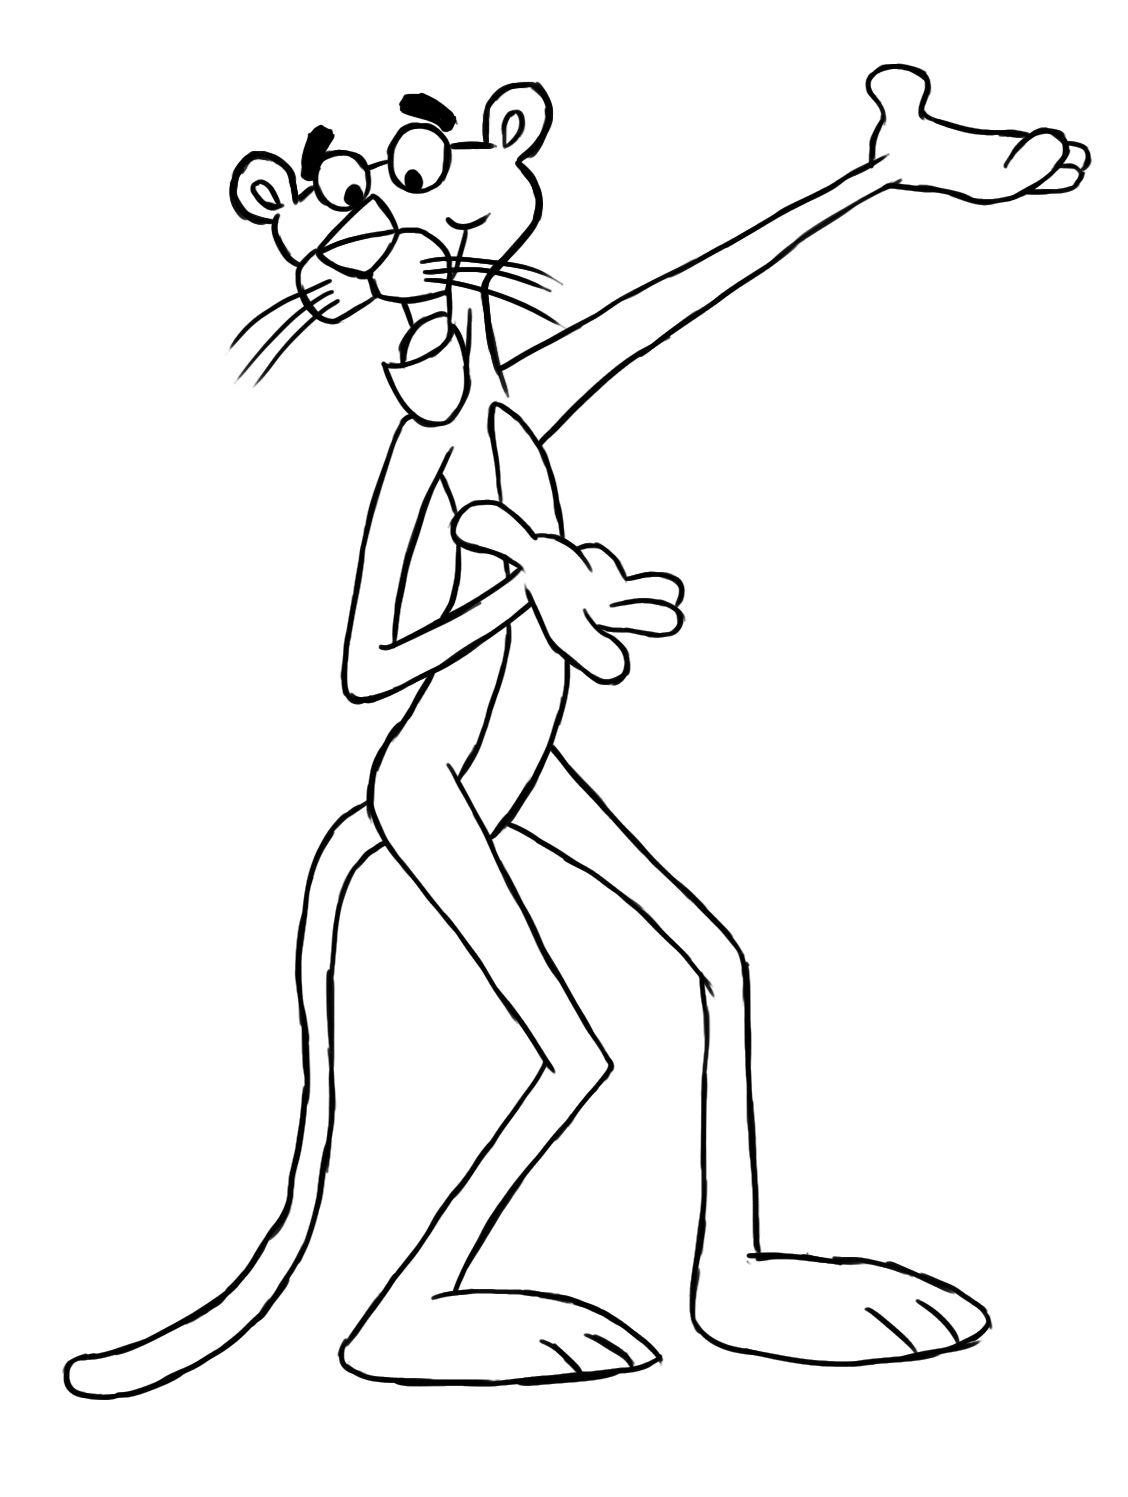 How To Draw The Pink Panther Pink Panther Cartoon Pink Panter Pink Panthers